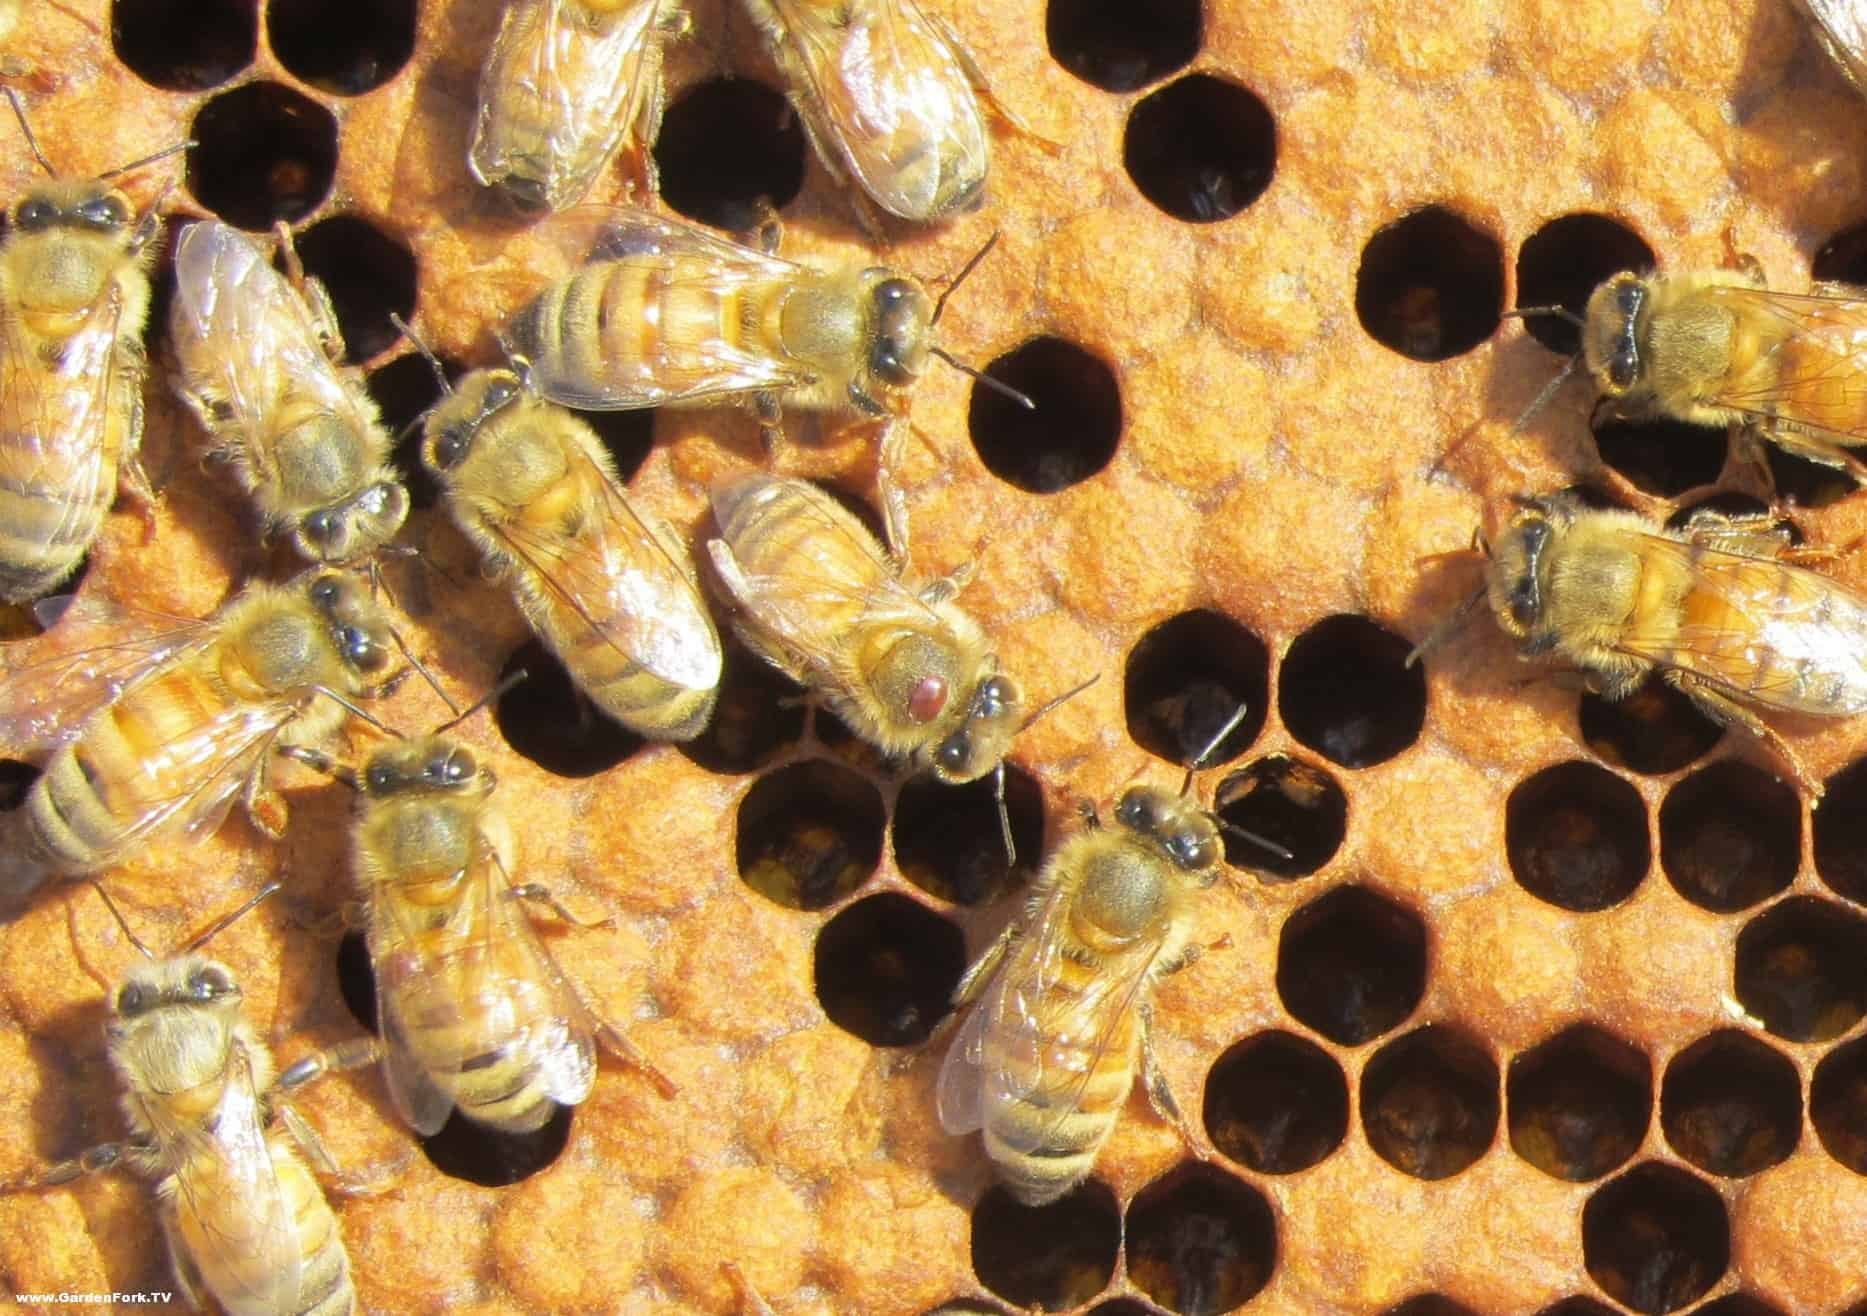 Inside the Hive: Views from a First Year Beekeeper (Scene 20)